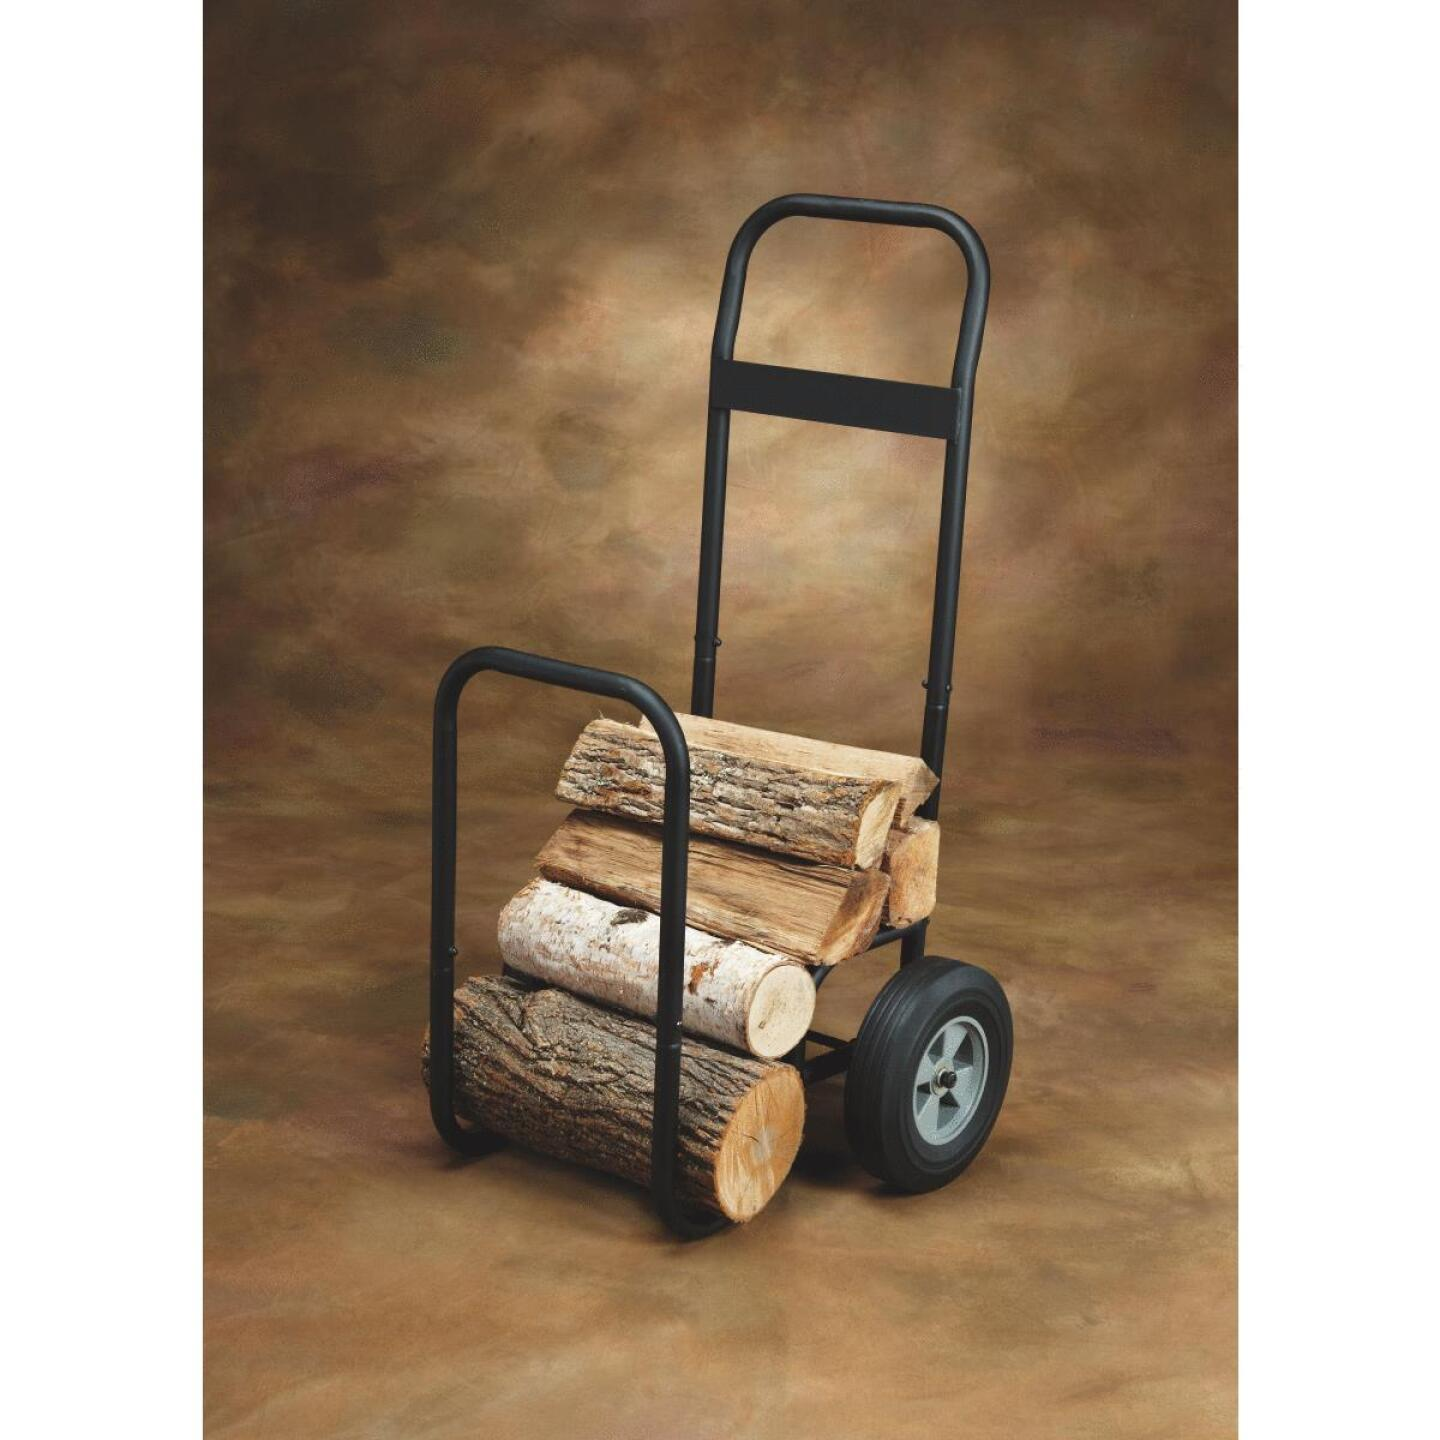 Home Impressions 21 In. W. x 40-1/2 In. H. Steel Log Cart Image 2